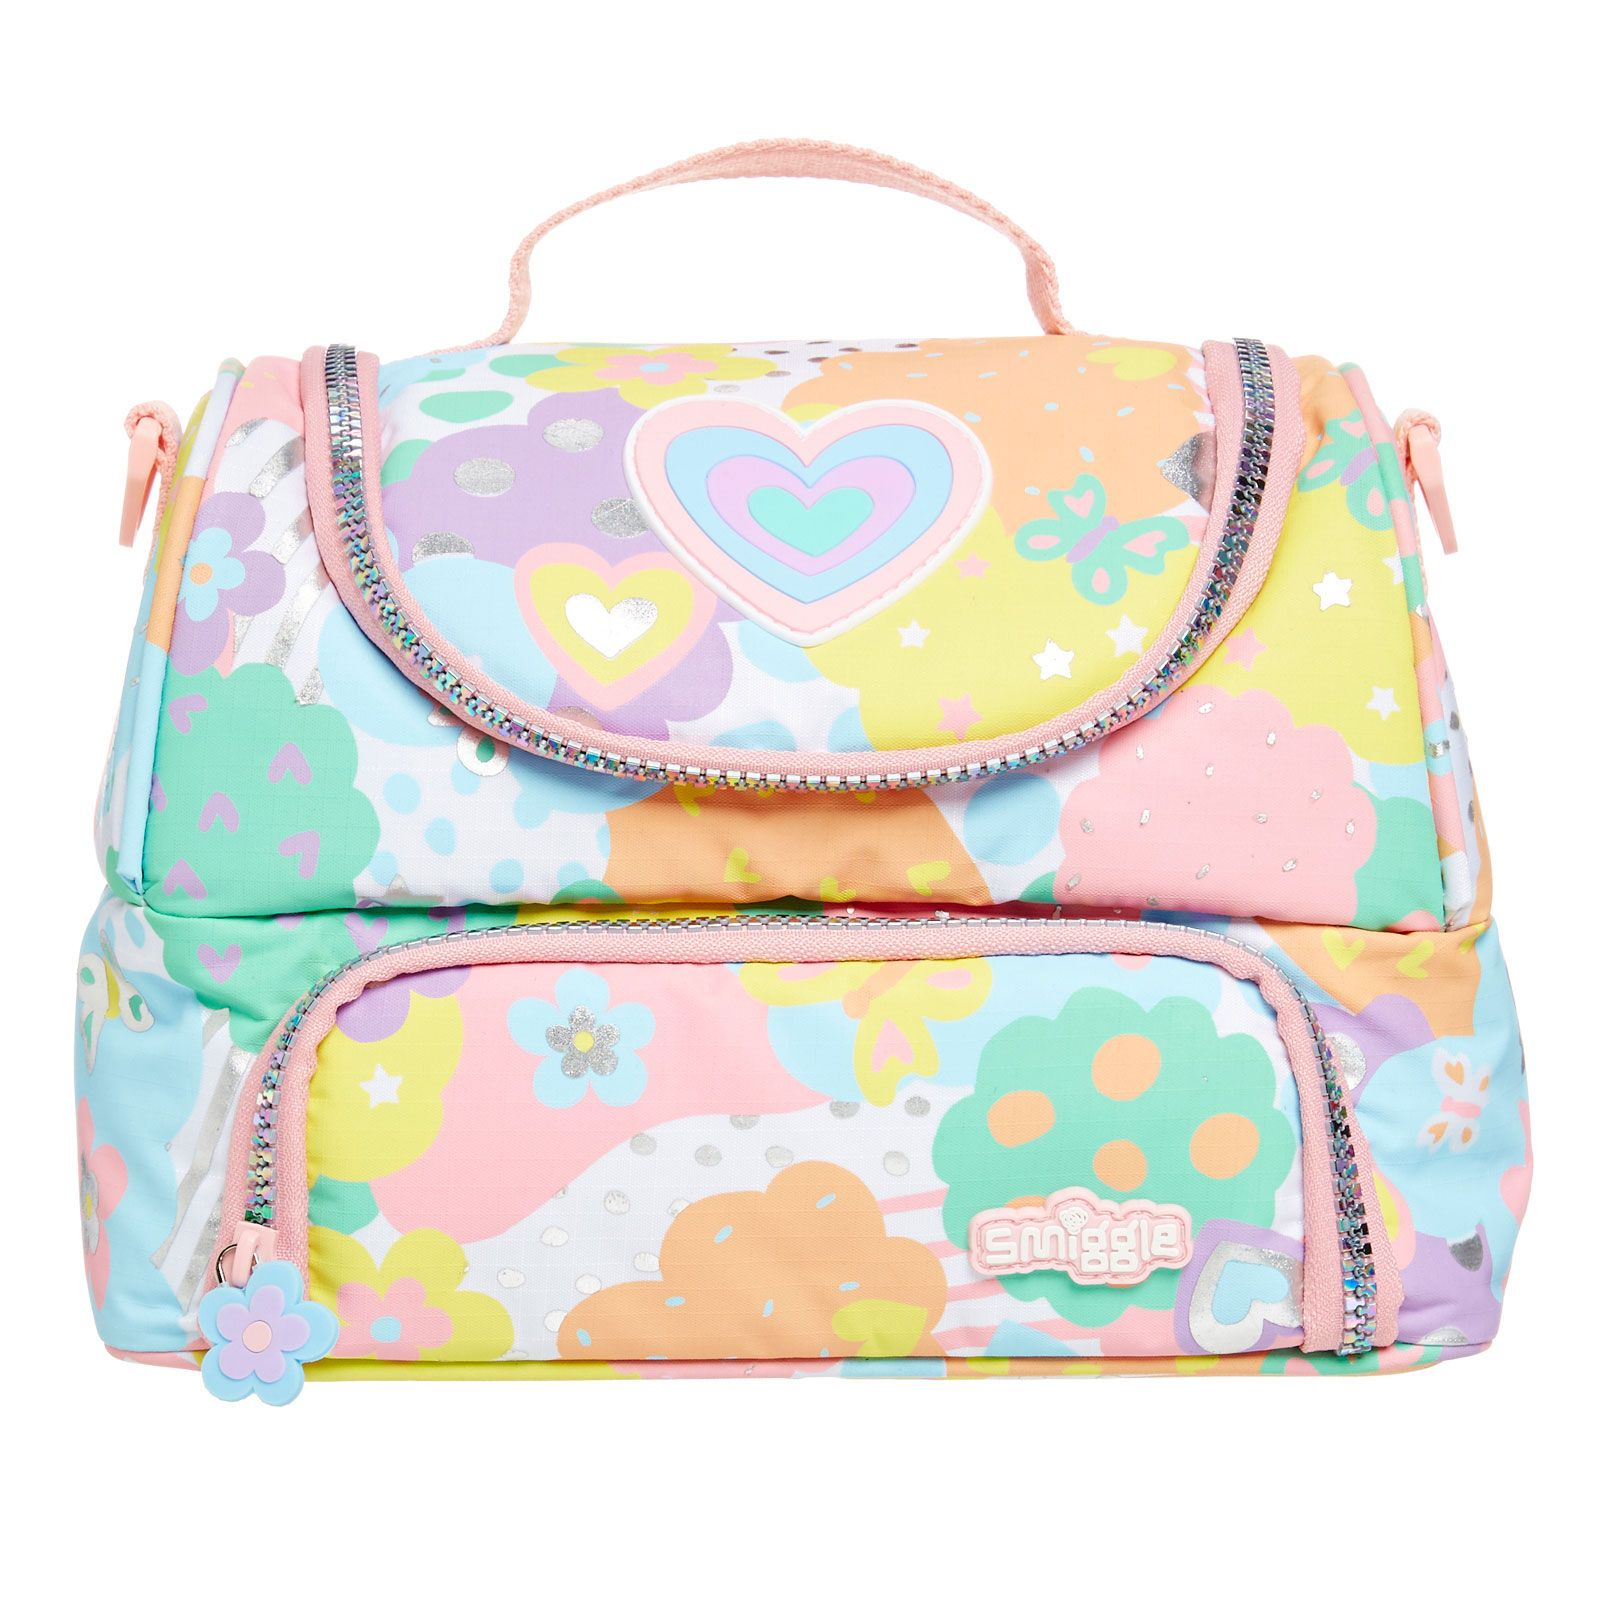 Image For Pastel Lunch Box From Smiggle Uk Lunch Box